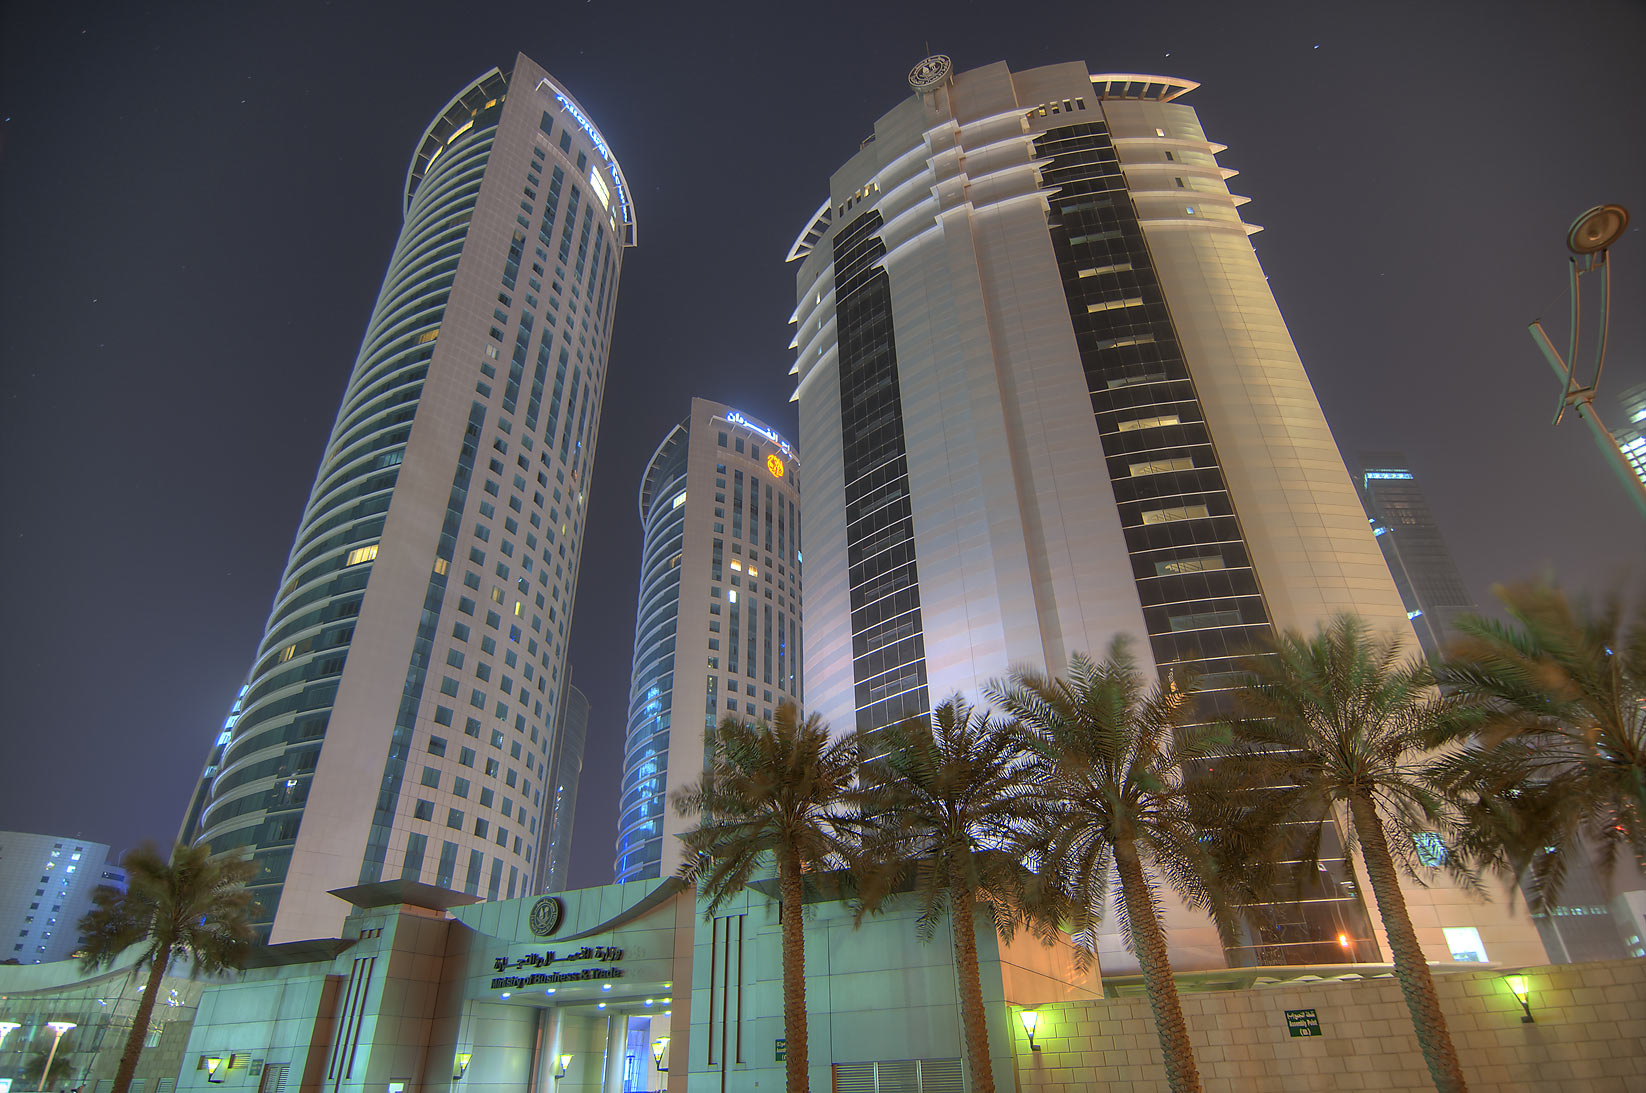 Al Fardan Towers and Ministry of Commerce in West Bay. Doha, Qatar